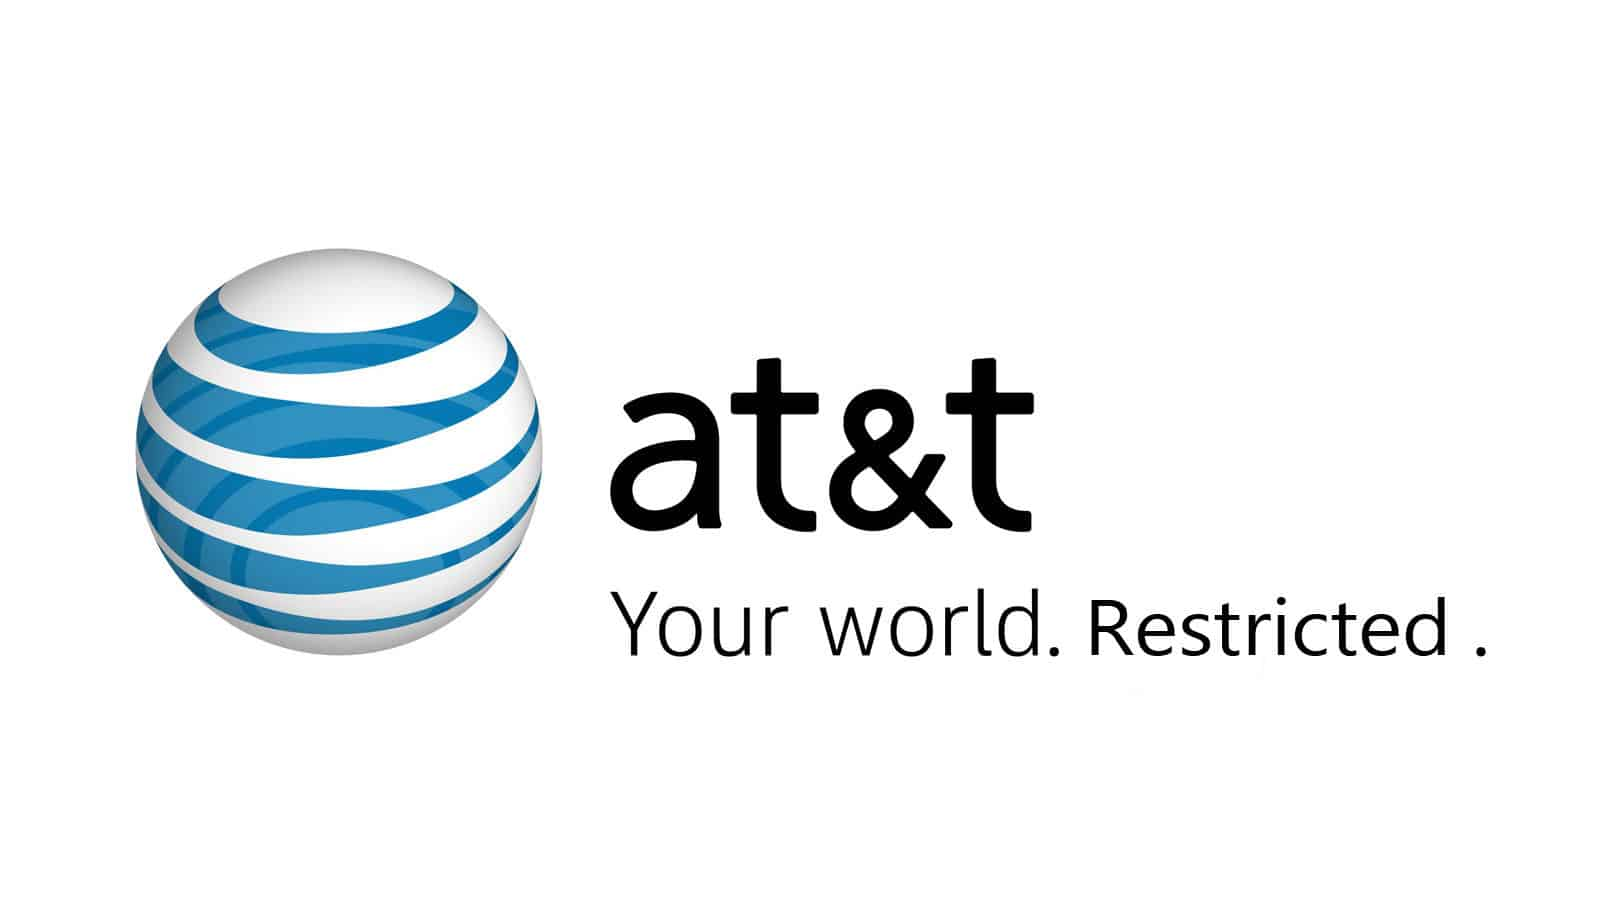 AT&T Restricted